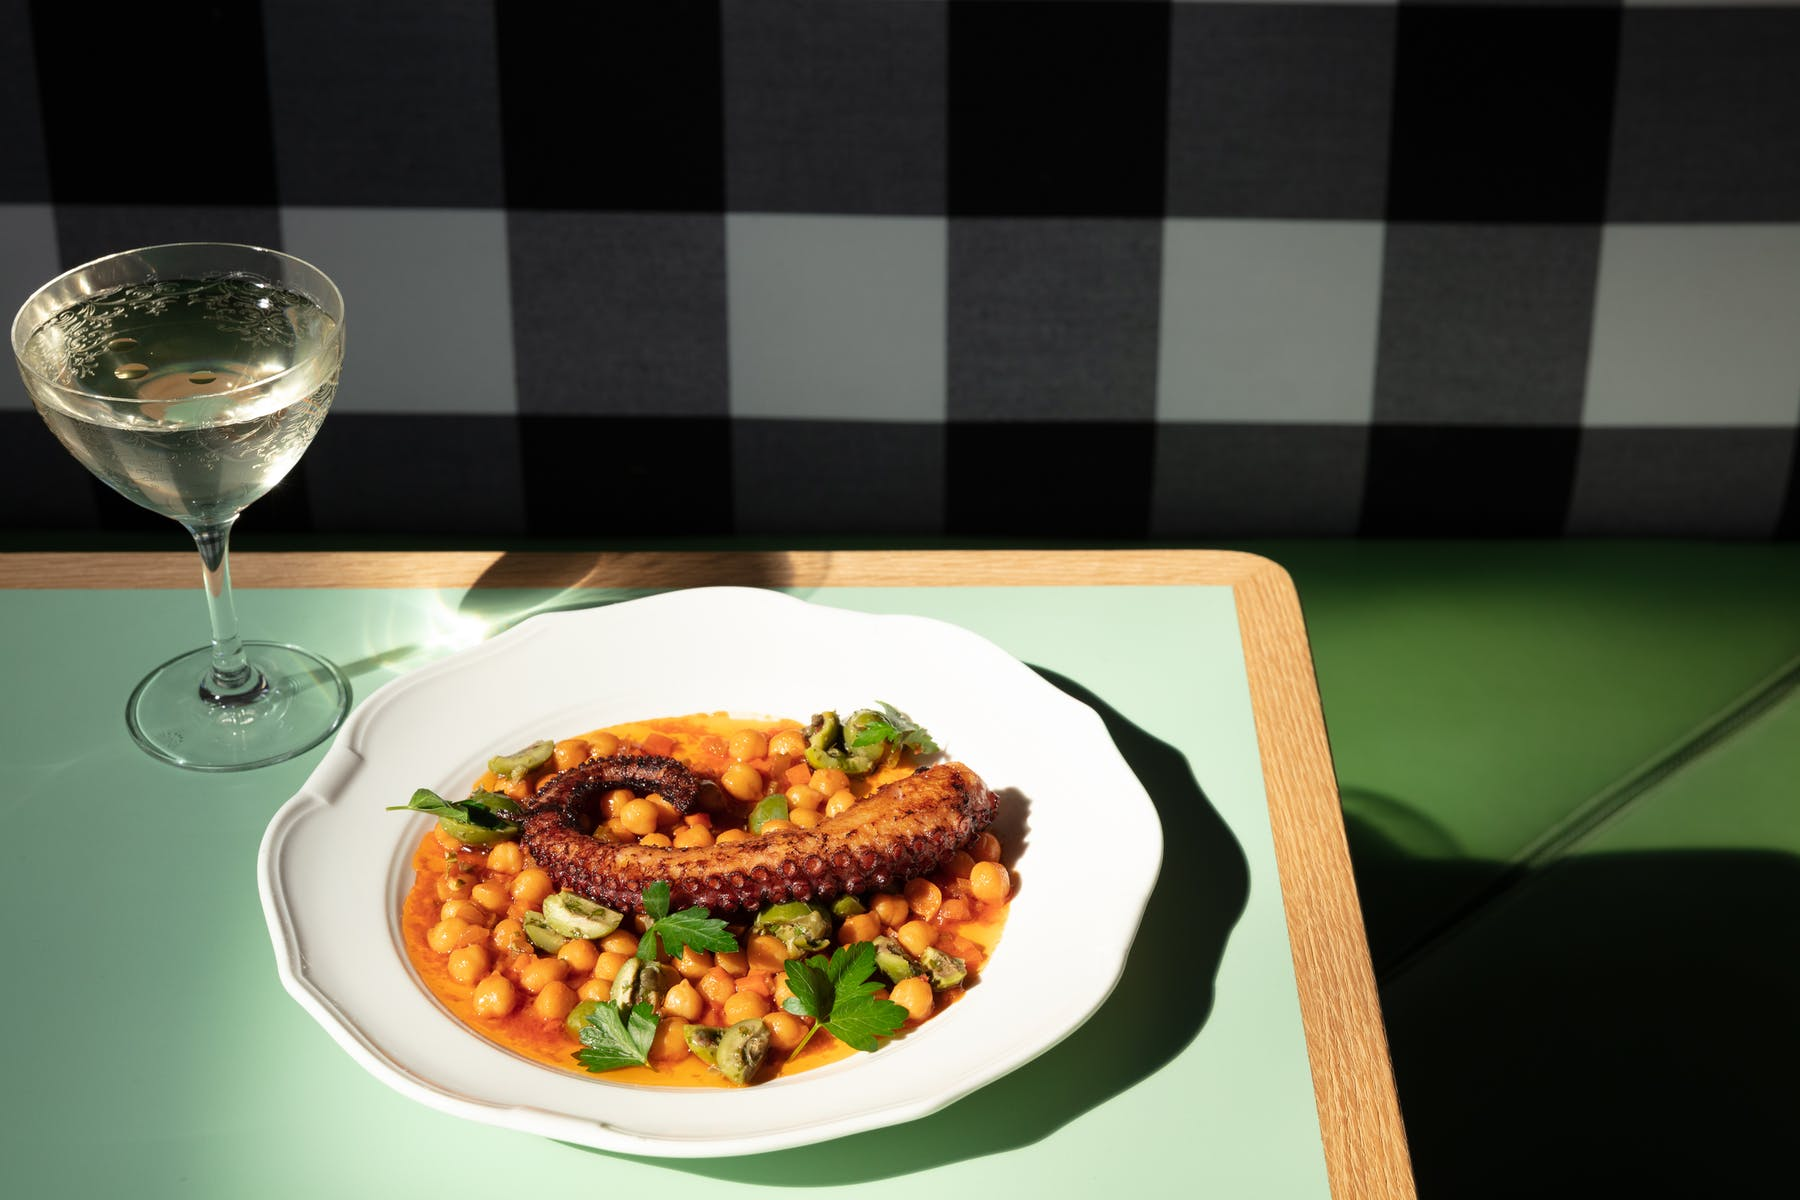 a plate of food and a glass of wine